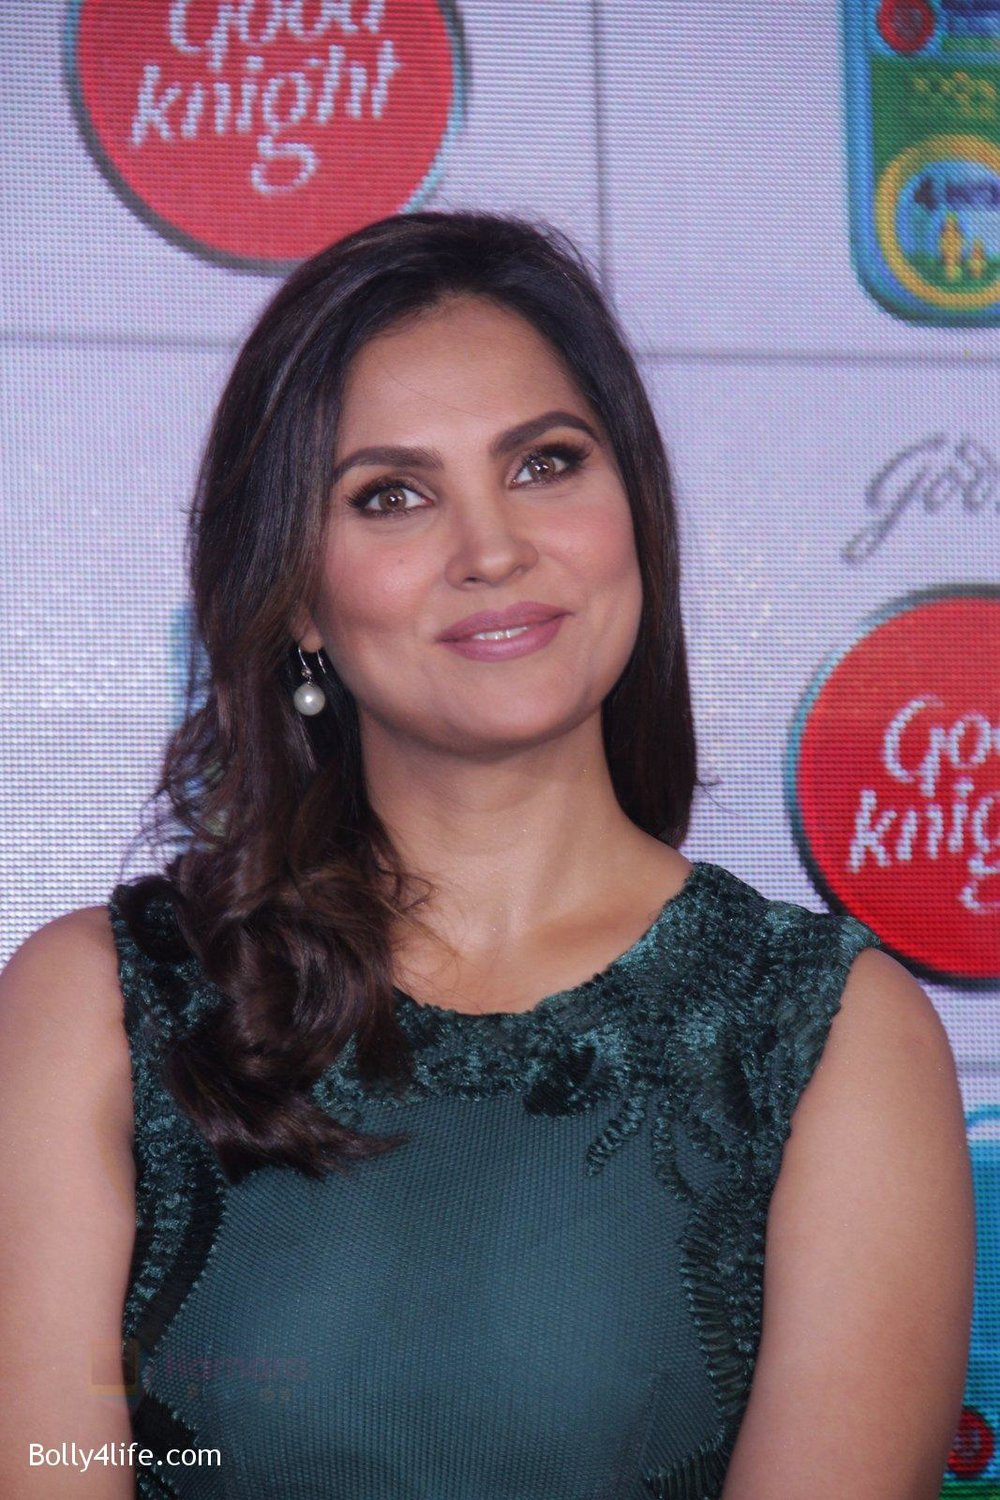 Lara-Dutta-promotes-Good-Night-on-29th-Sept-2016-16.jpg